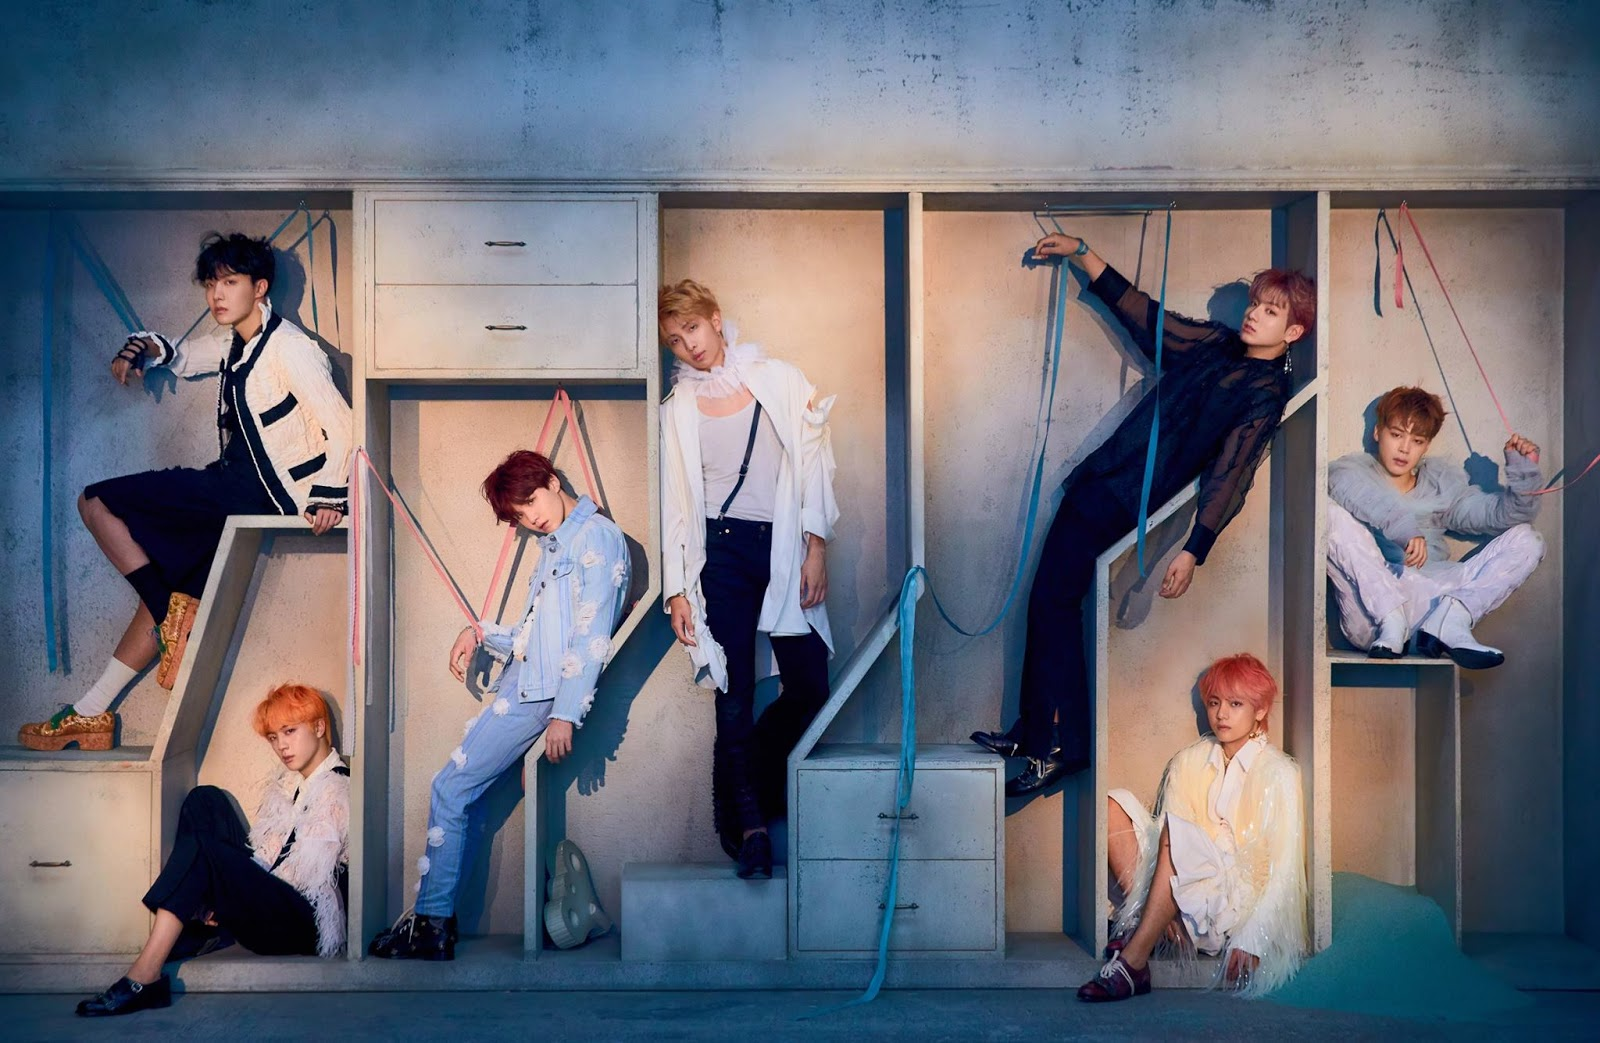 bts-love-yourself-answer-concept-photo-e-version-1-min